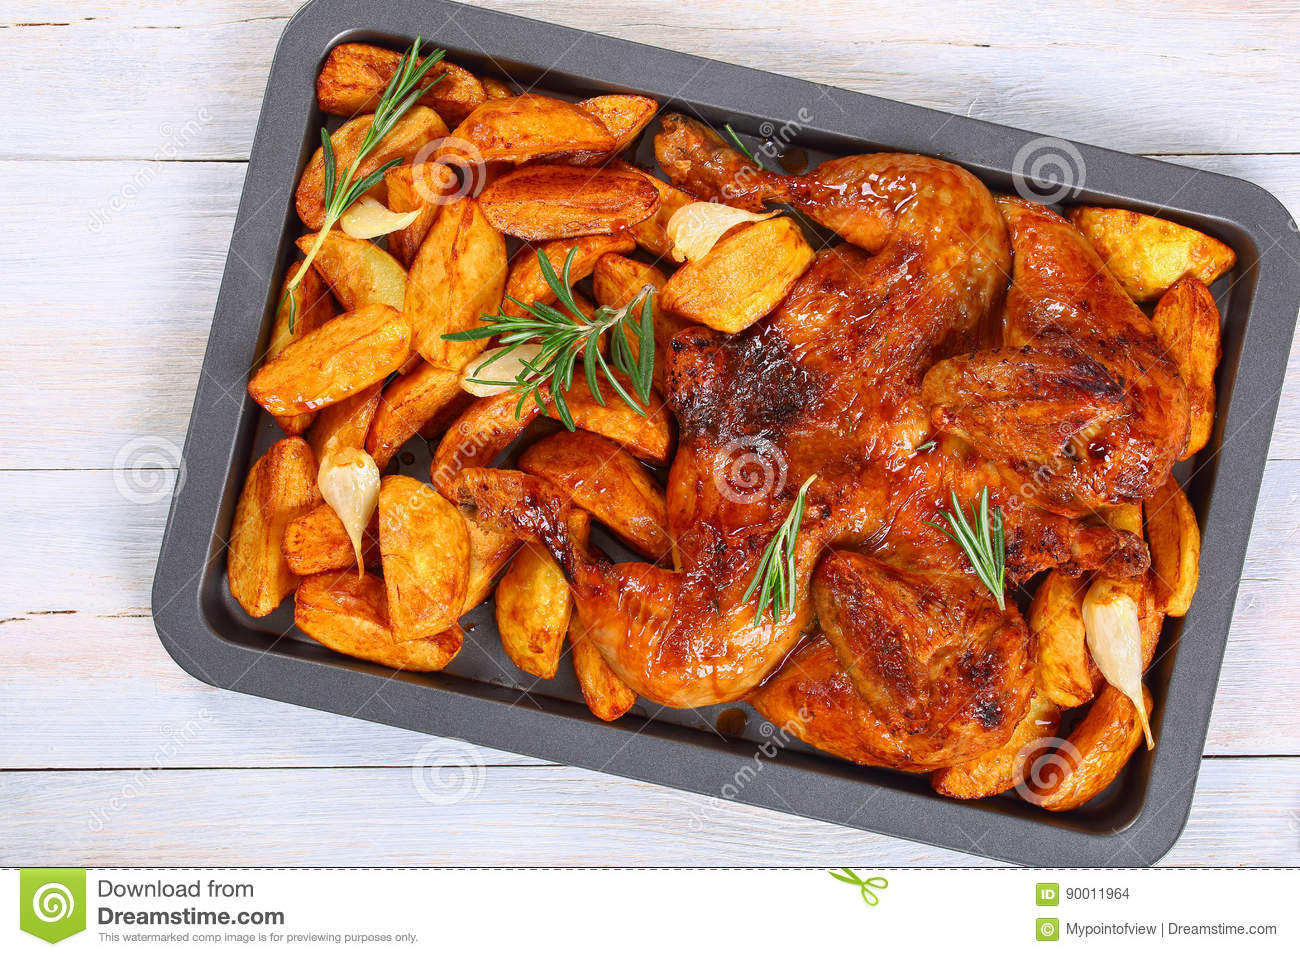 how to cook flattened chicken in the oven